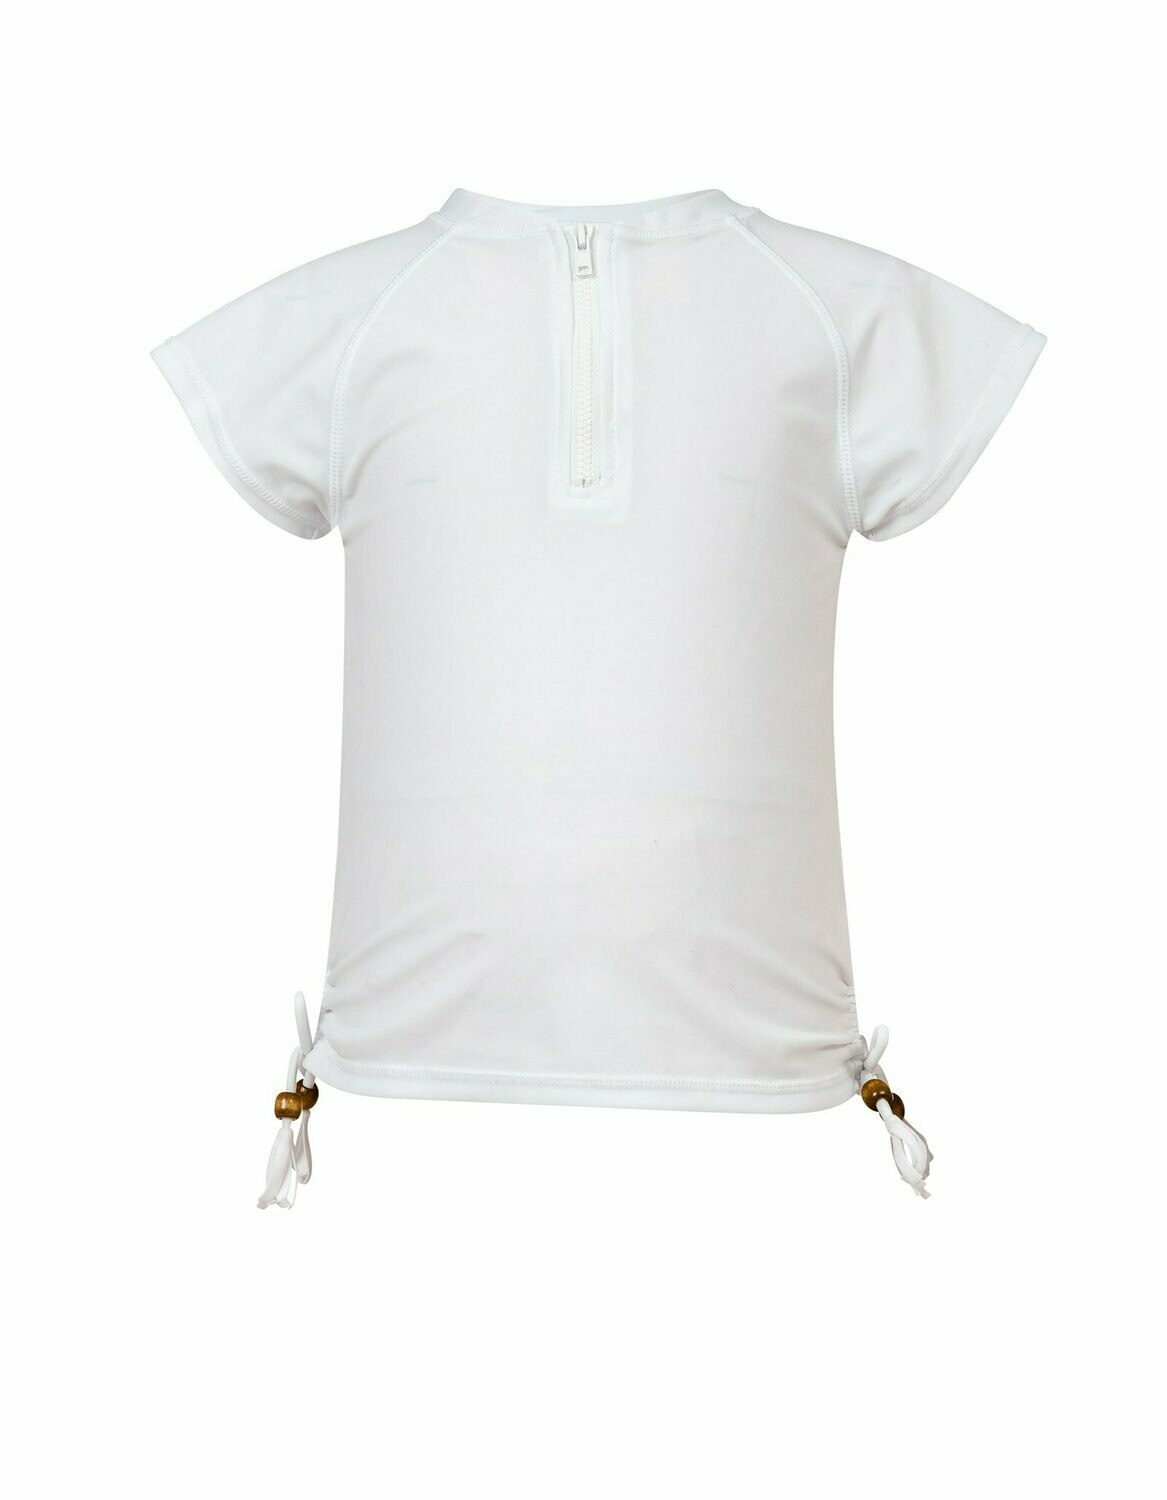 White Zip SS Rash Top - 8